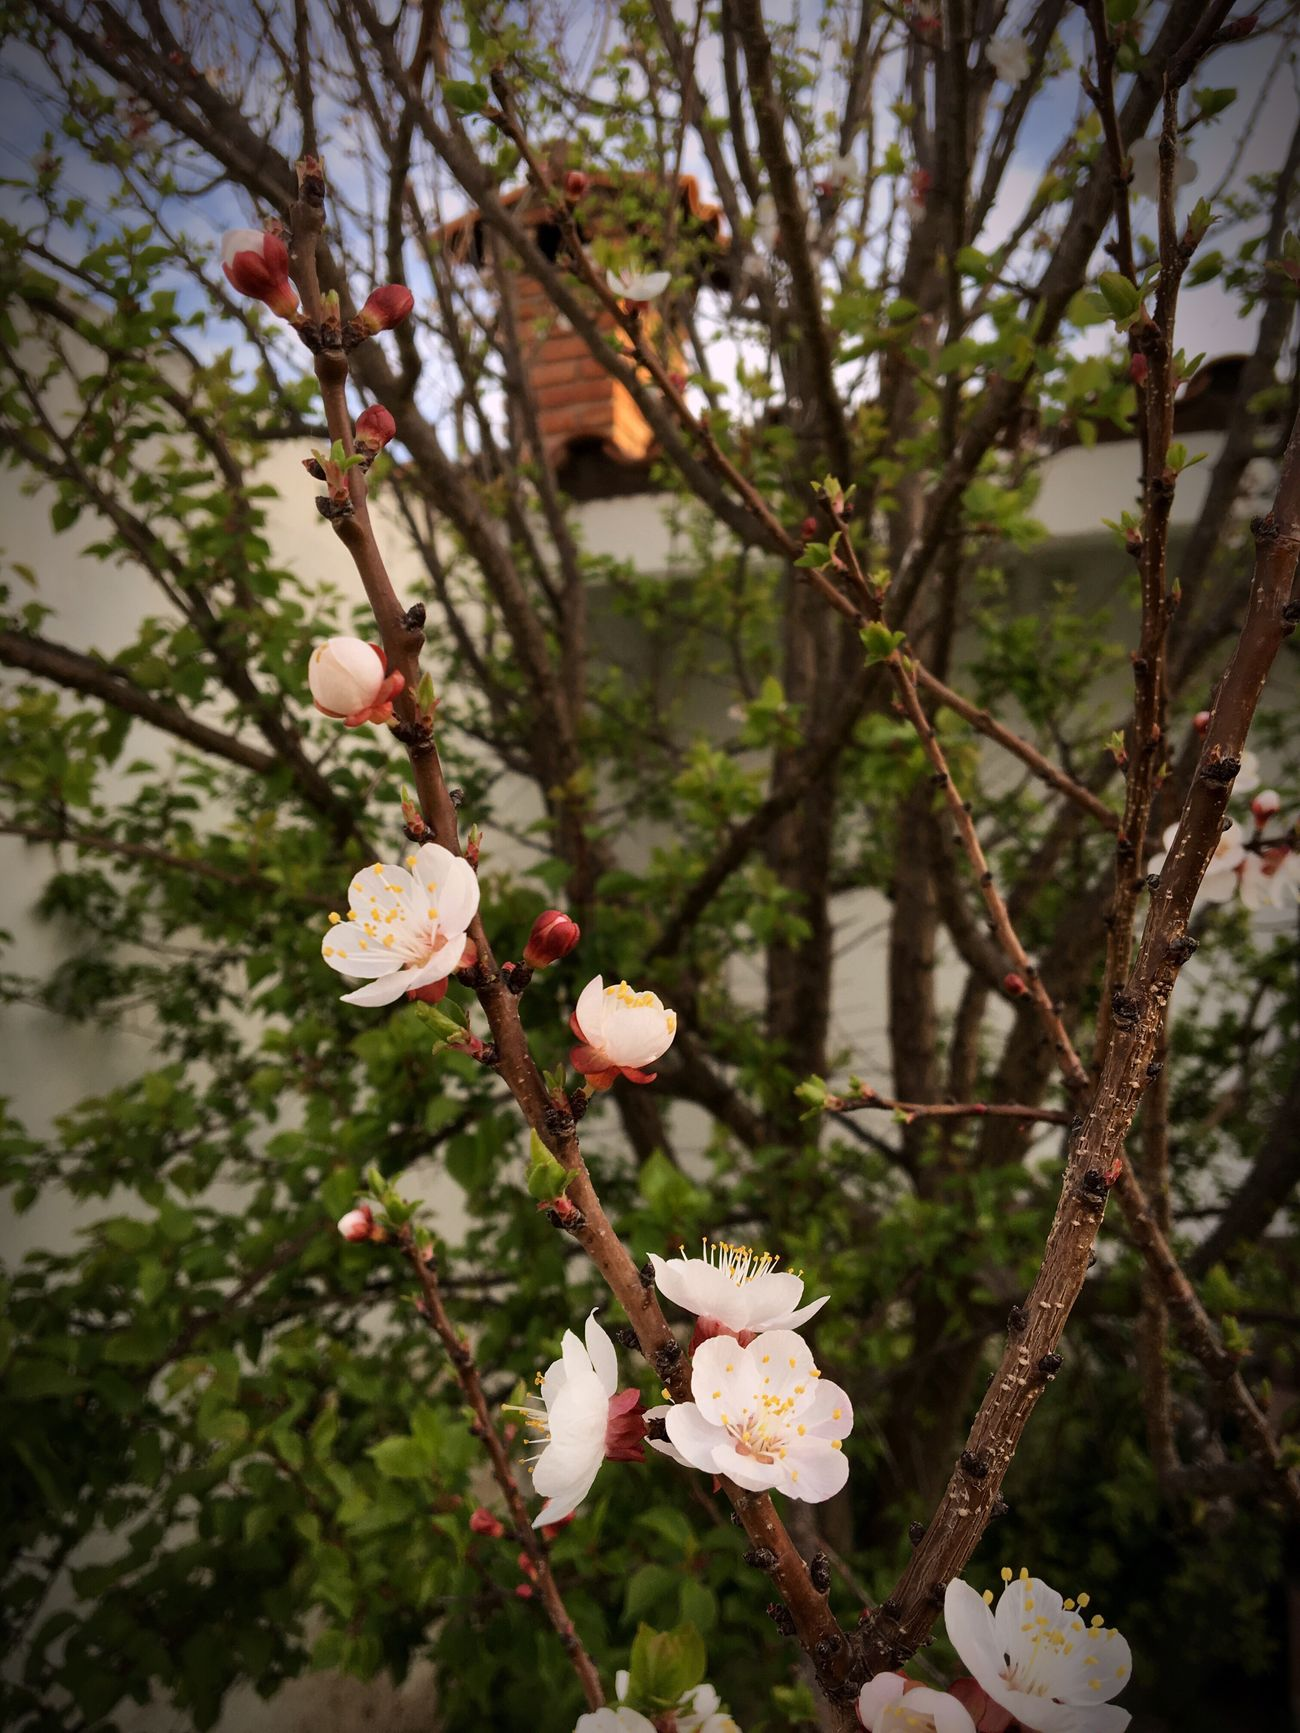 Flowers Growth Flower Tree Nature Beauty In Nature Blossom Springtime Branch Fragility Close-up No People Twig Freshness Petal Day Outdoors Flower Head Plum Blossom